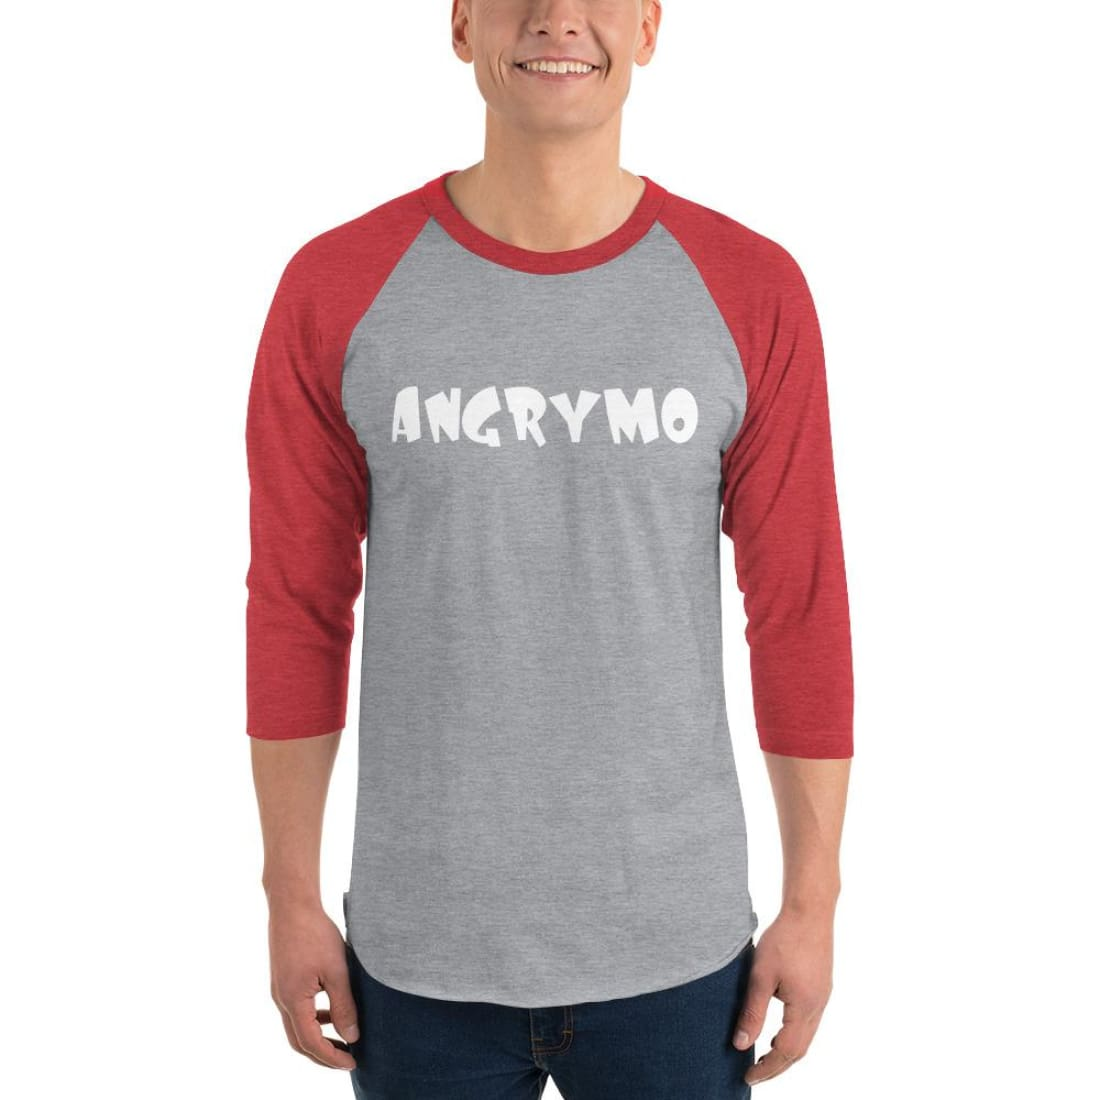 Angrymo 3/4 Sleeve Raglan Shirt - Heather Grey/heather Red / S